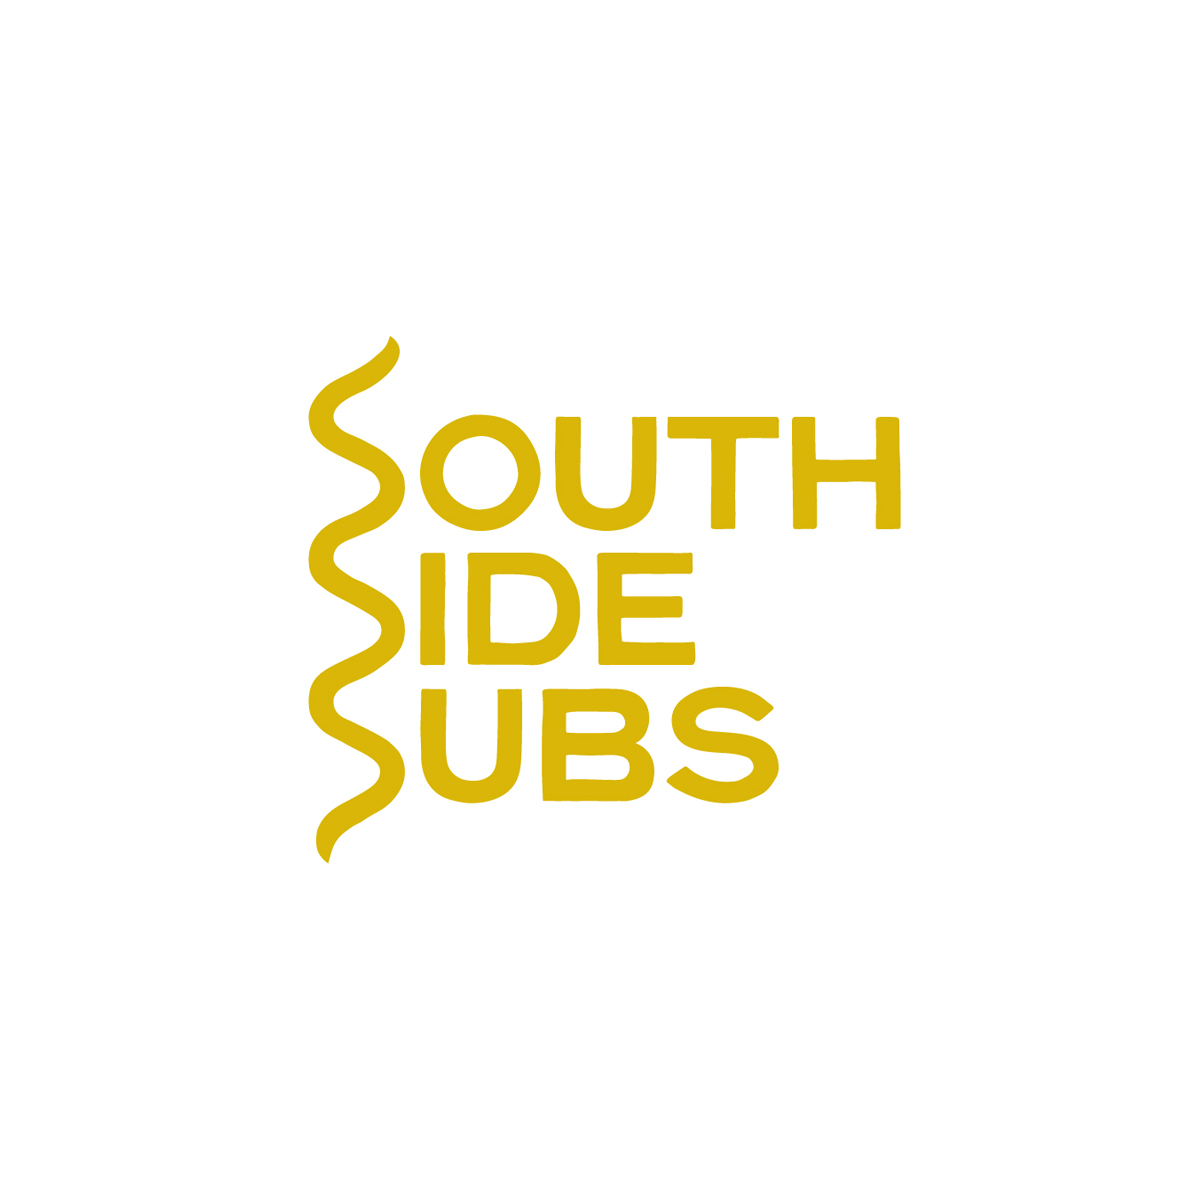 Southsidesubs by Grace Hayes